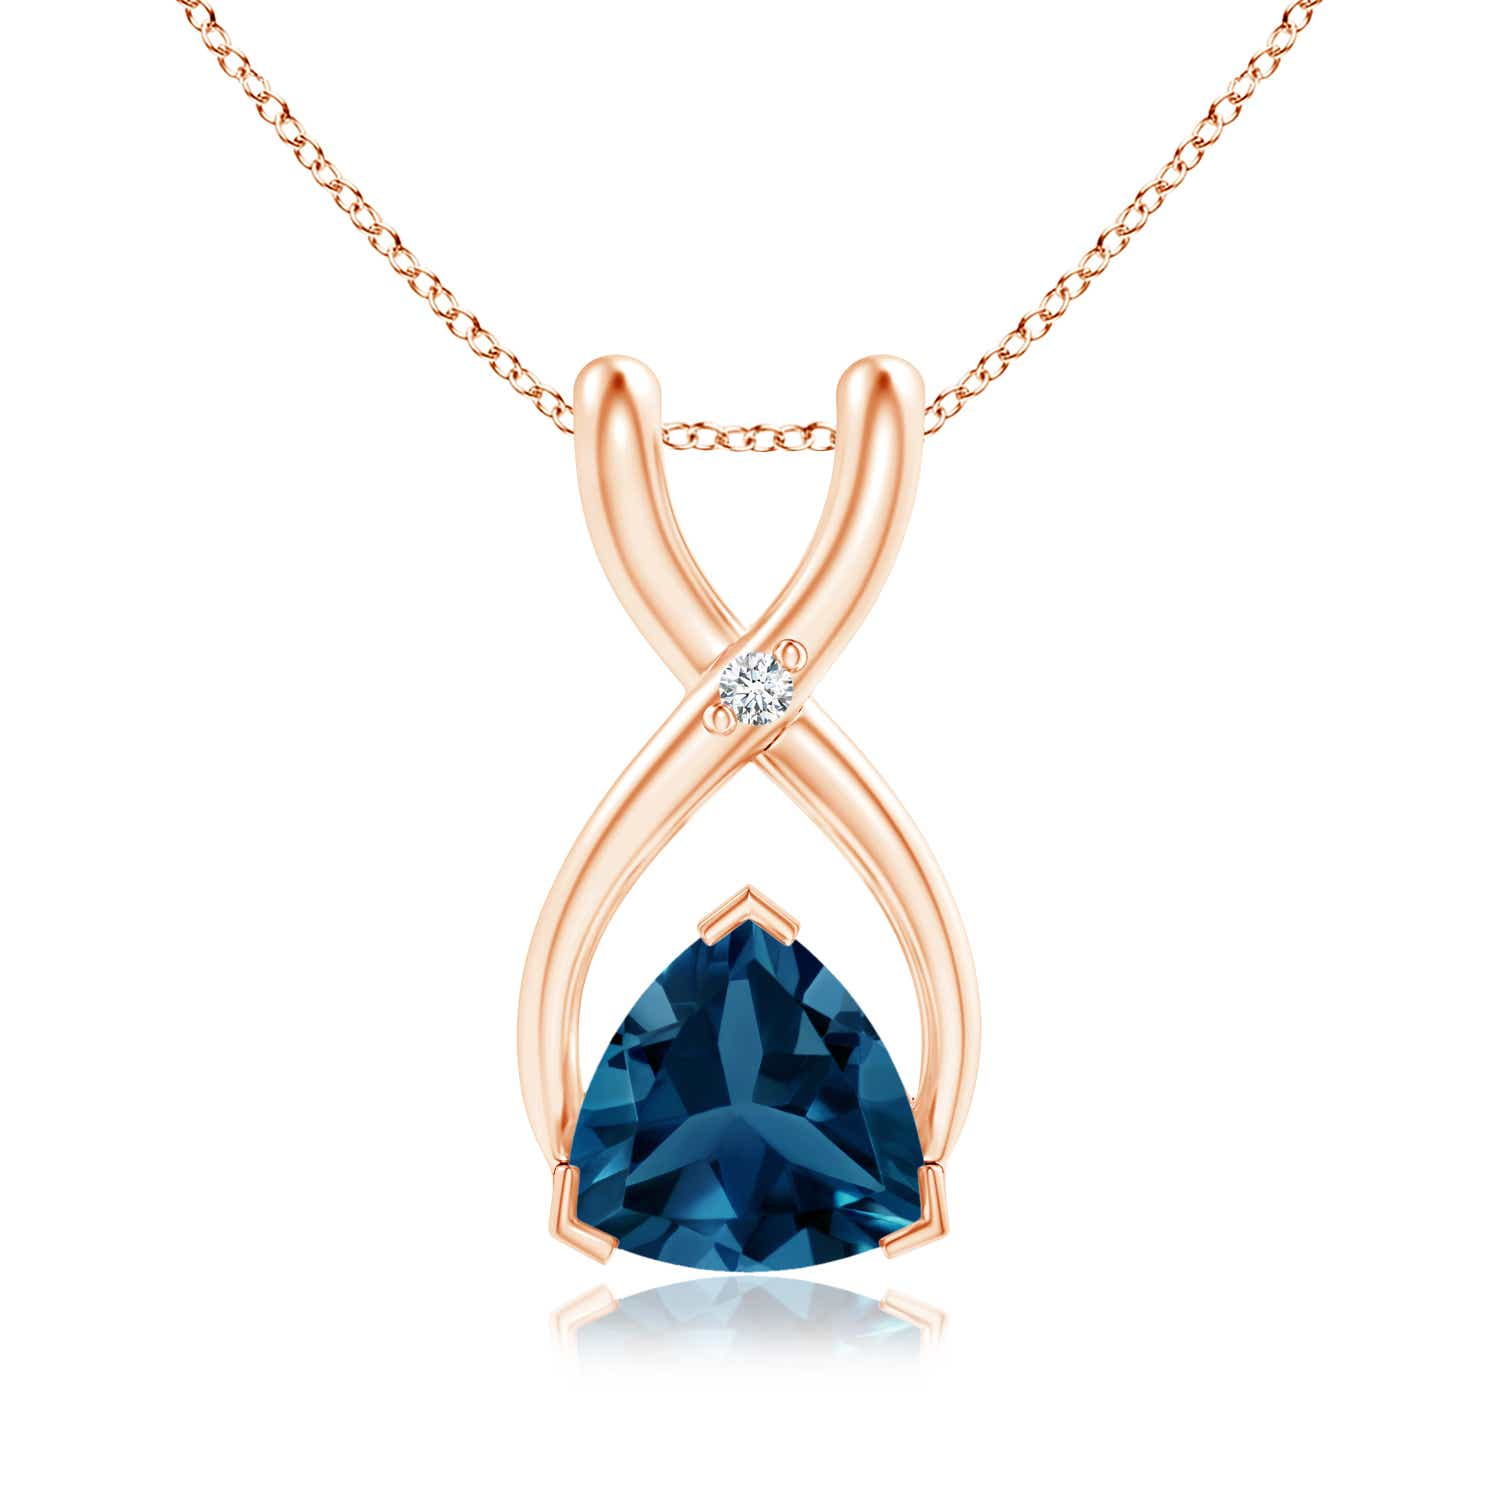 Angara London Blue Topaz Solitaire Pendant in Yellow Gold o9Mz7qUOAa